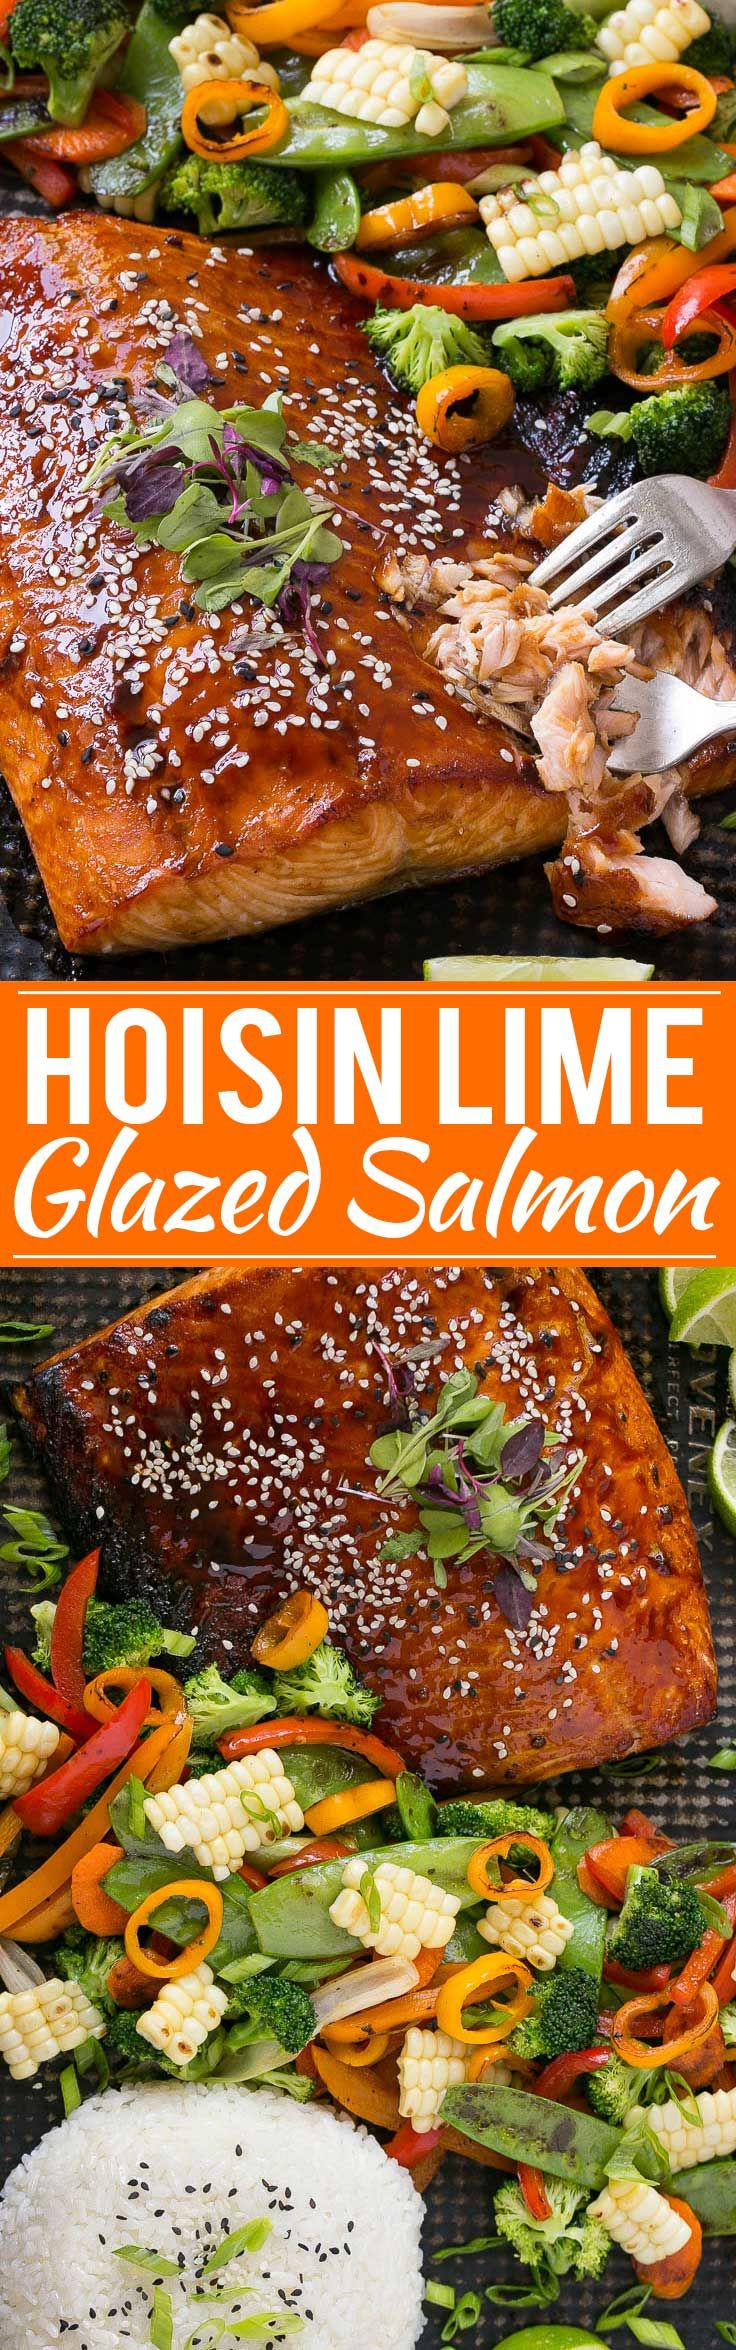 Hoisin Lime Glazed Salmon with Mixed Vegetables - The salmon and vegetables cook together on the same pan for a quick, healthy and easy dinner!